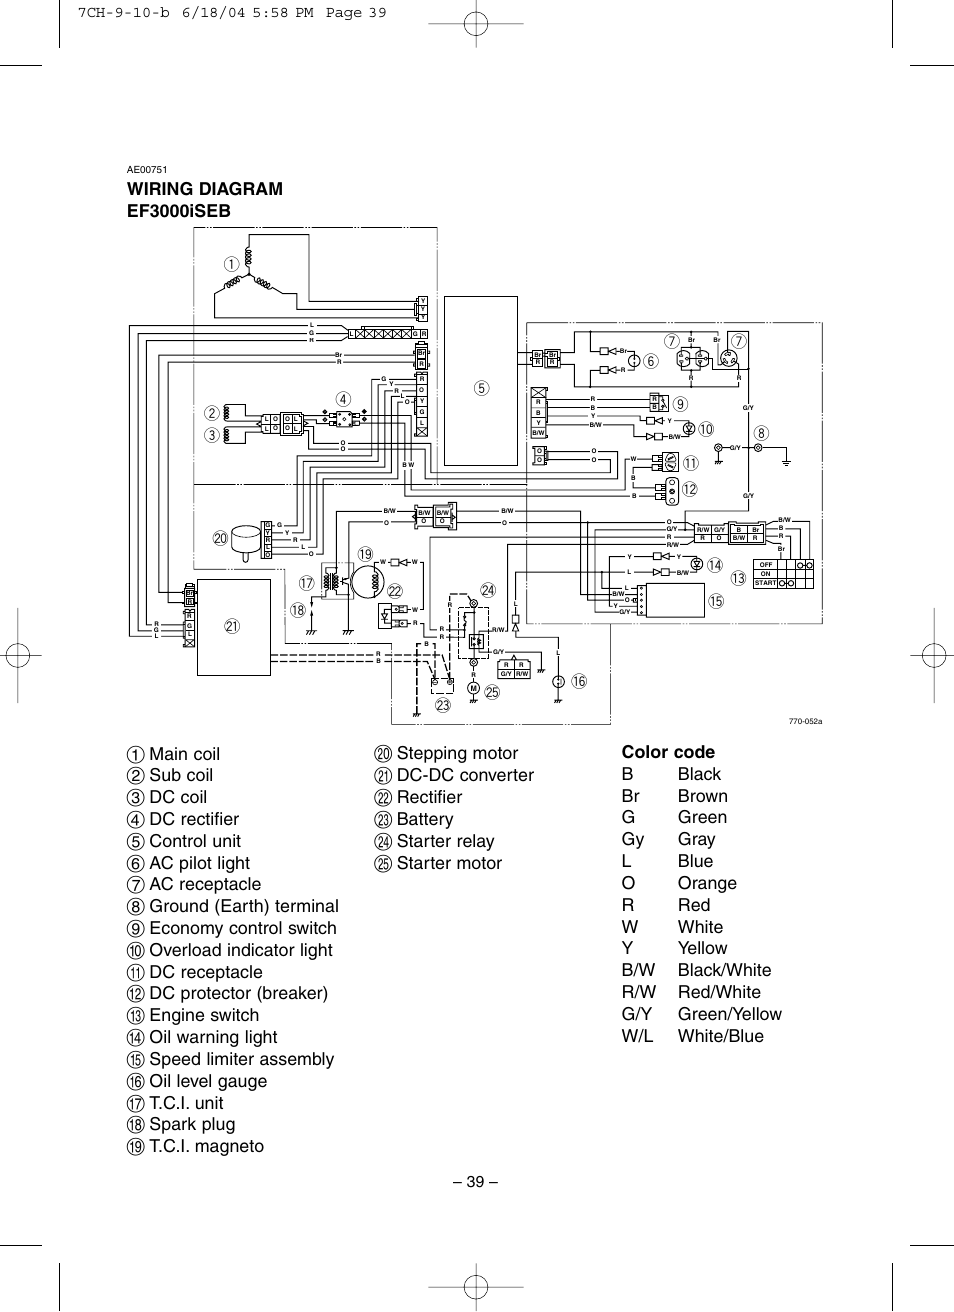 Yamaha Ef3000iseb Wiring Diagram Another Diagrams Chevy Equinox Fuse Box 22922727 Ef3000ise User Manual Page 44 47 Also For Rh Manualsdir Com Exhaust